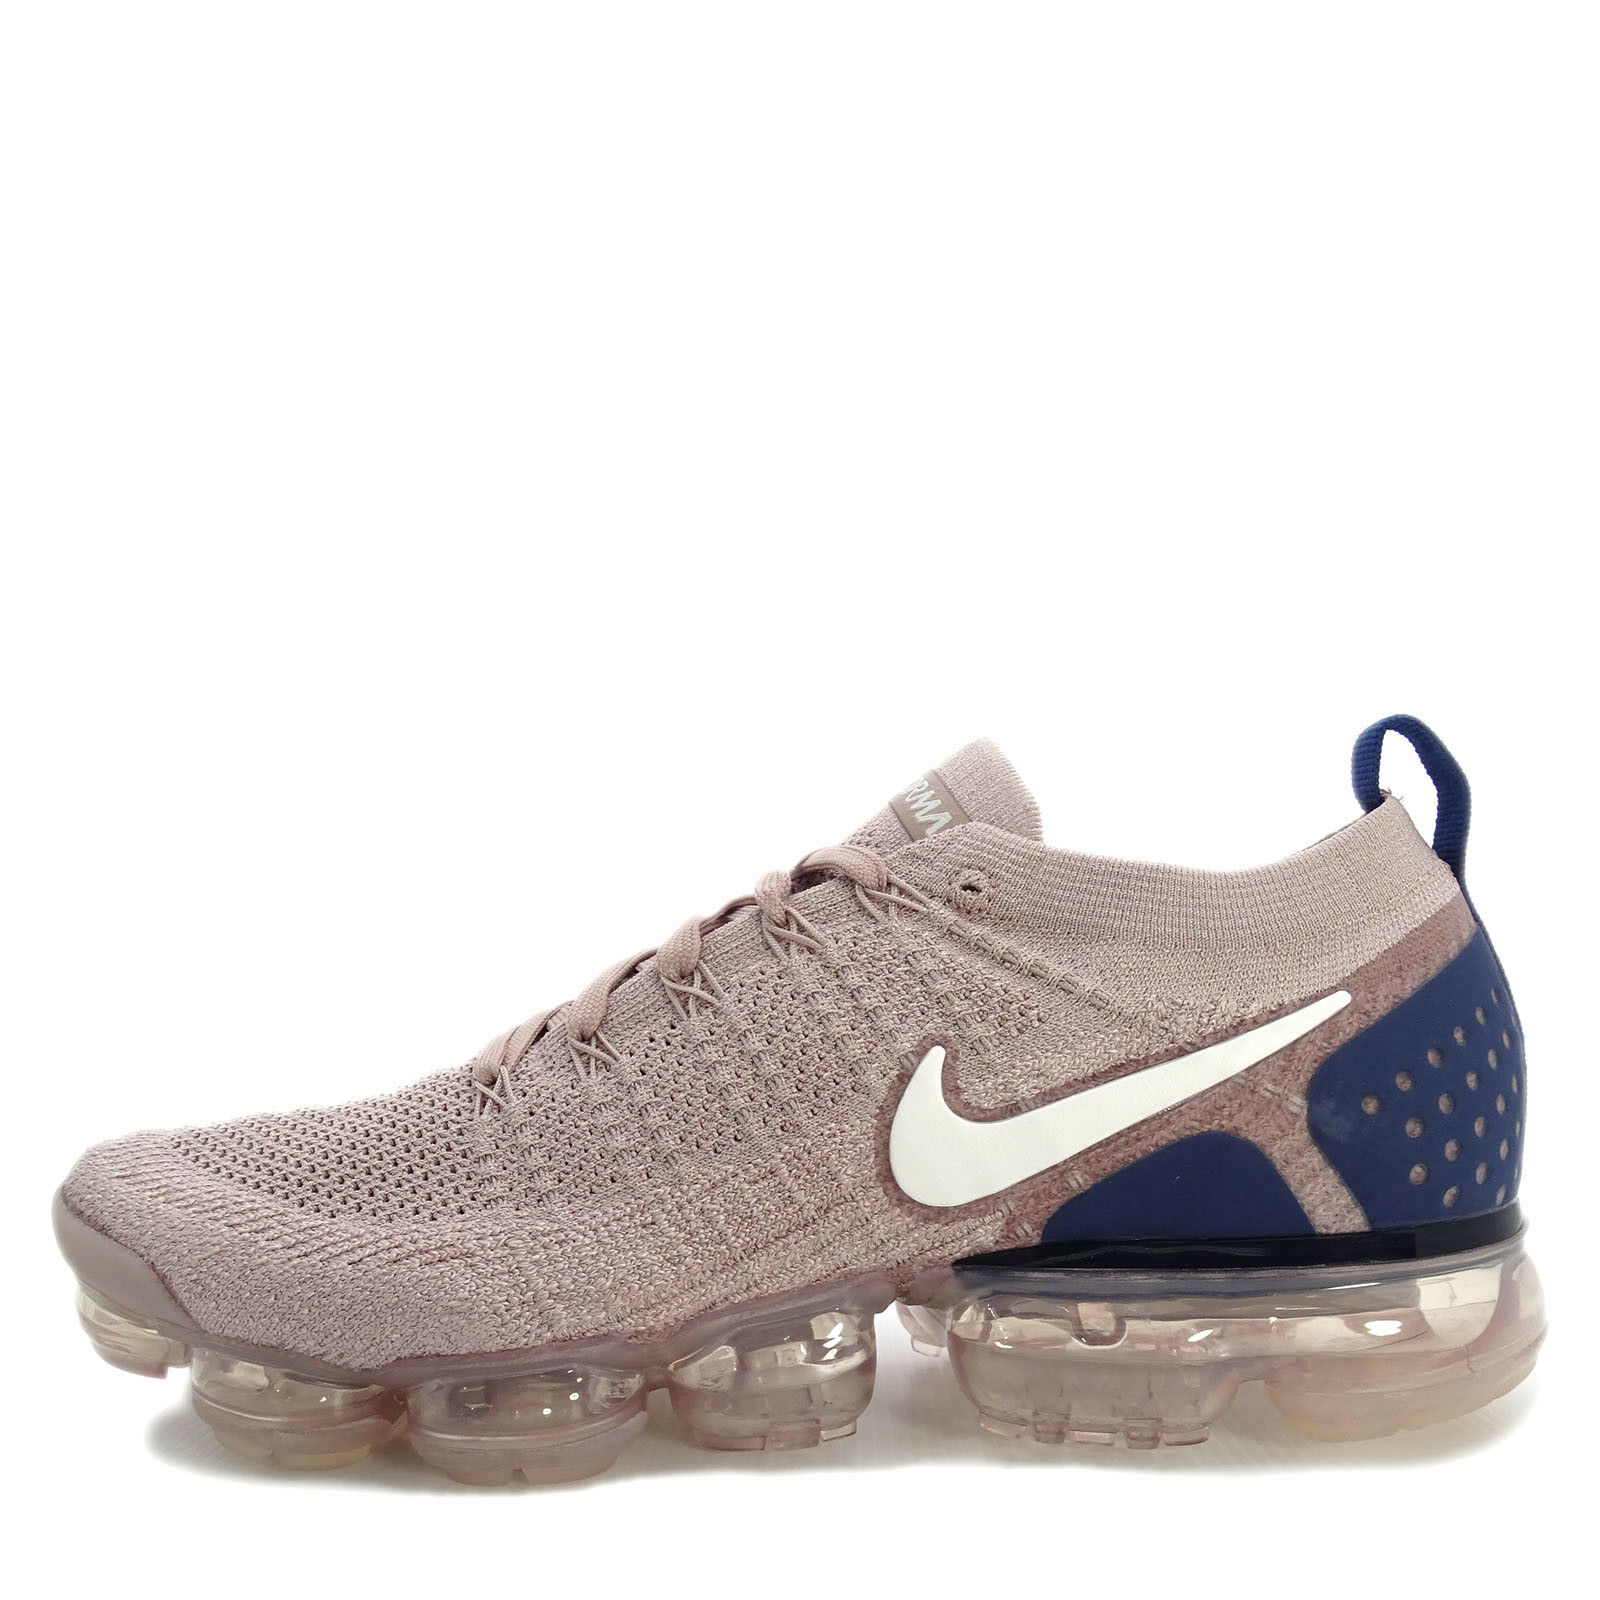 Nike Air Vapormax Flyknit 2 [942842-201] Men Running shoes Diffused Taupe Navy